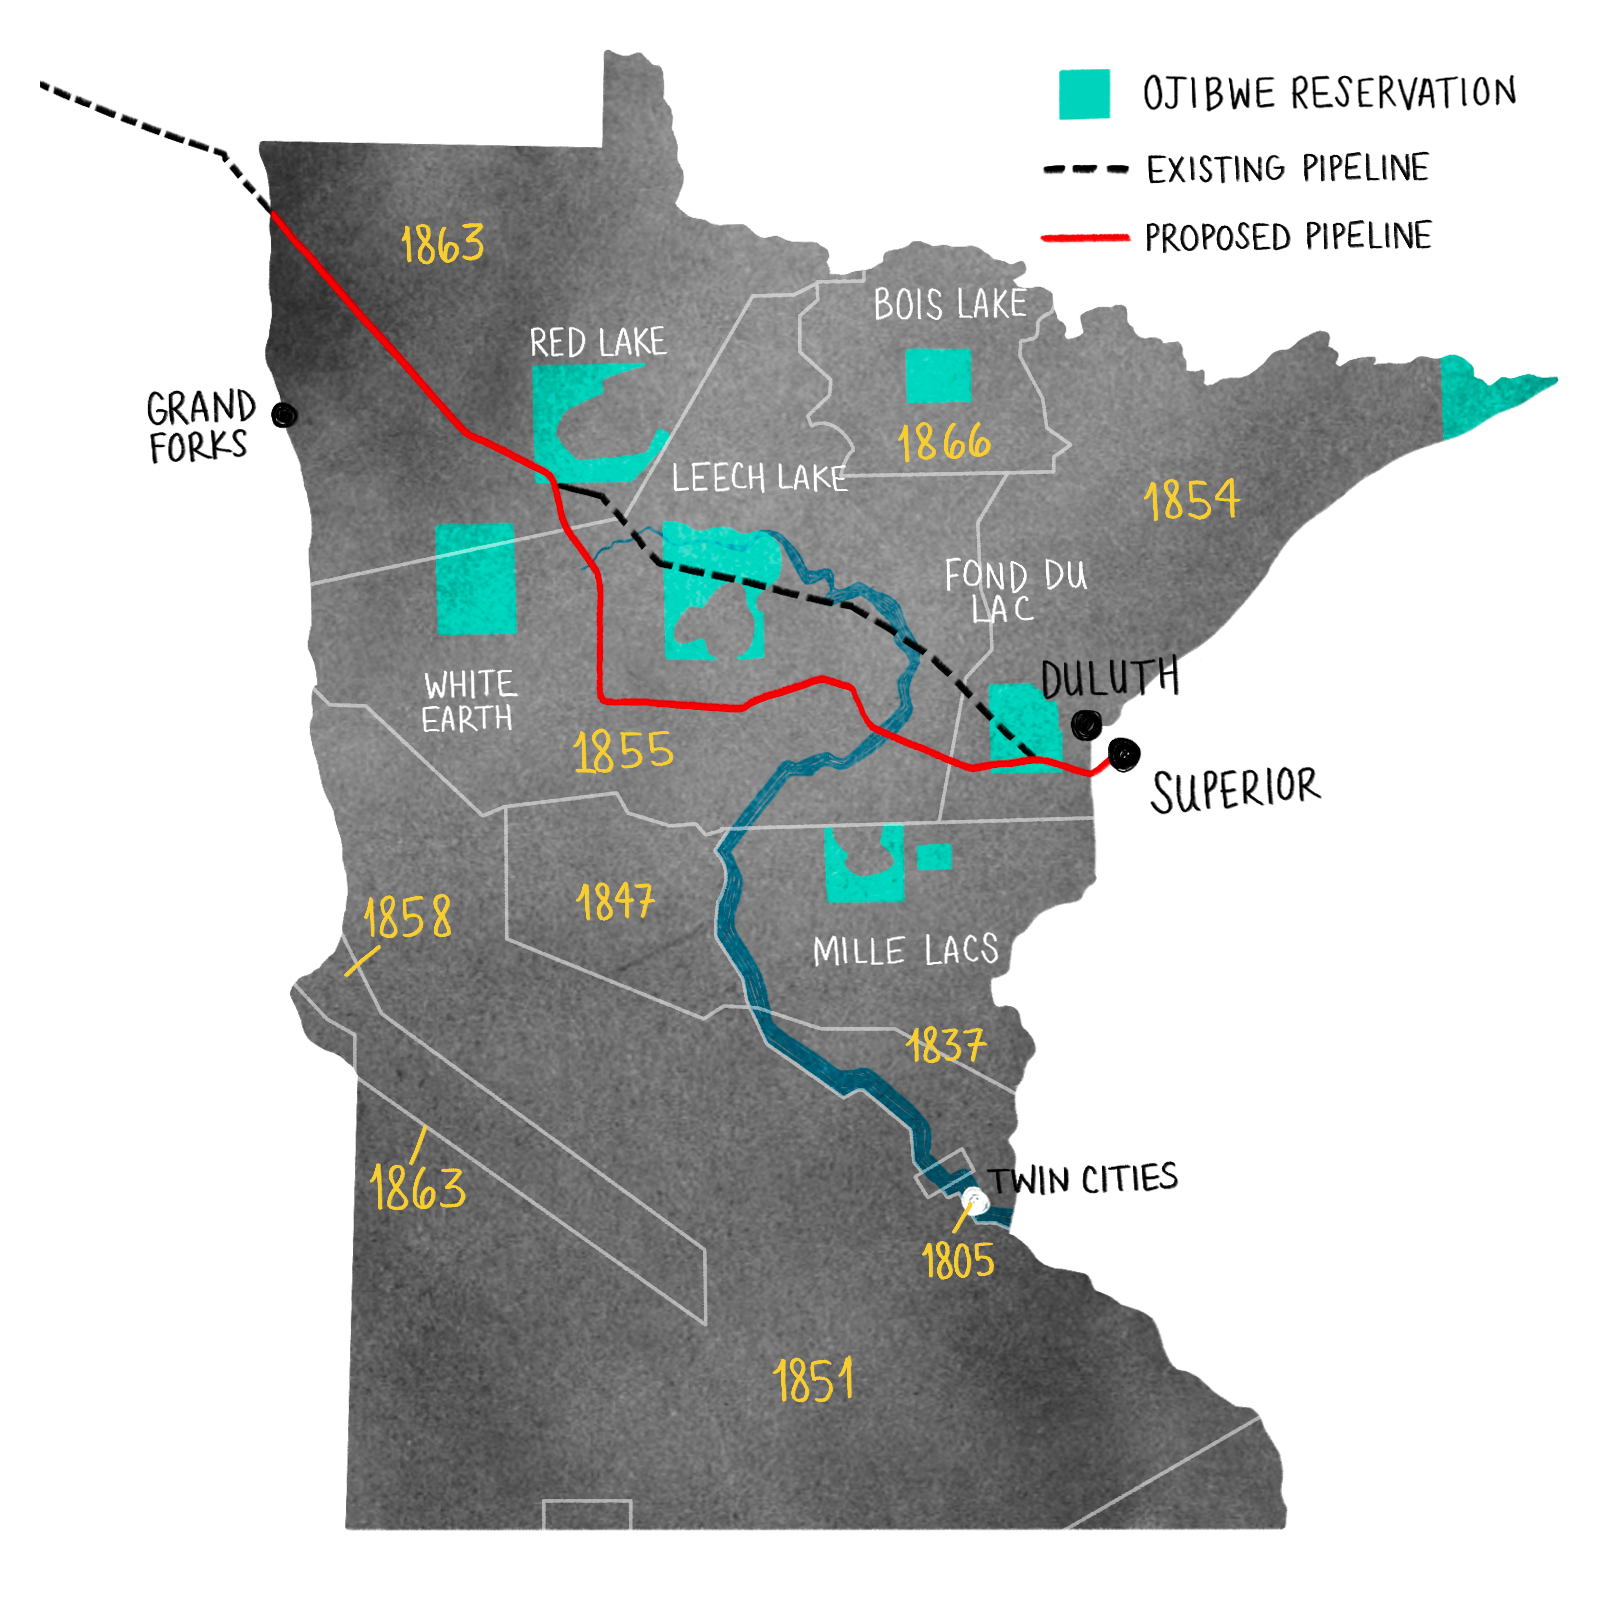 a map of Minnesota with the proposed Line 3 pipeline route marked as well as Ojibwe treaty border and reservations marked